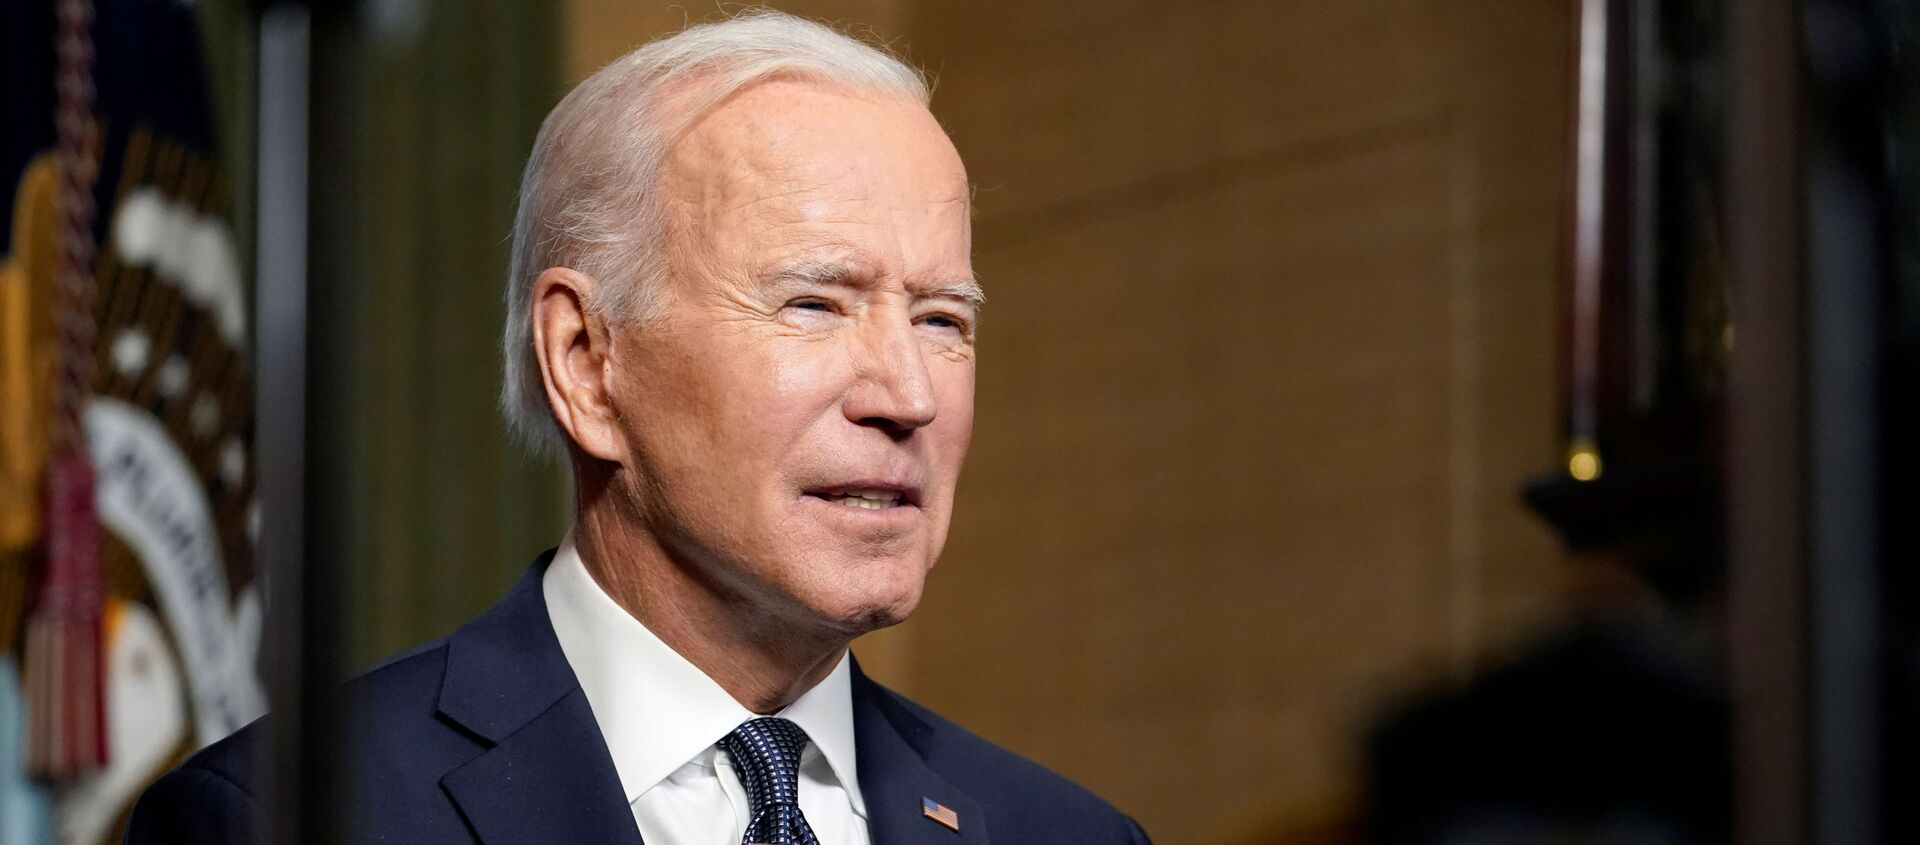 U.S. President Joe Biden leaves delivers remarks on his plan to withdraw American troops from Afghanistan, at the White House, Washington, U.S., April 14, 2021. - Sputnik Việt Nam, 1920, 15.04.2021